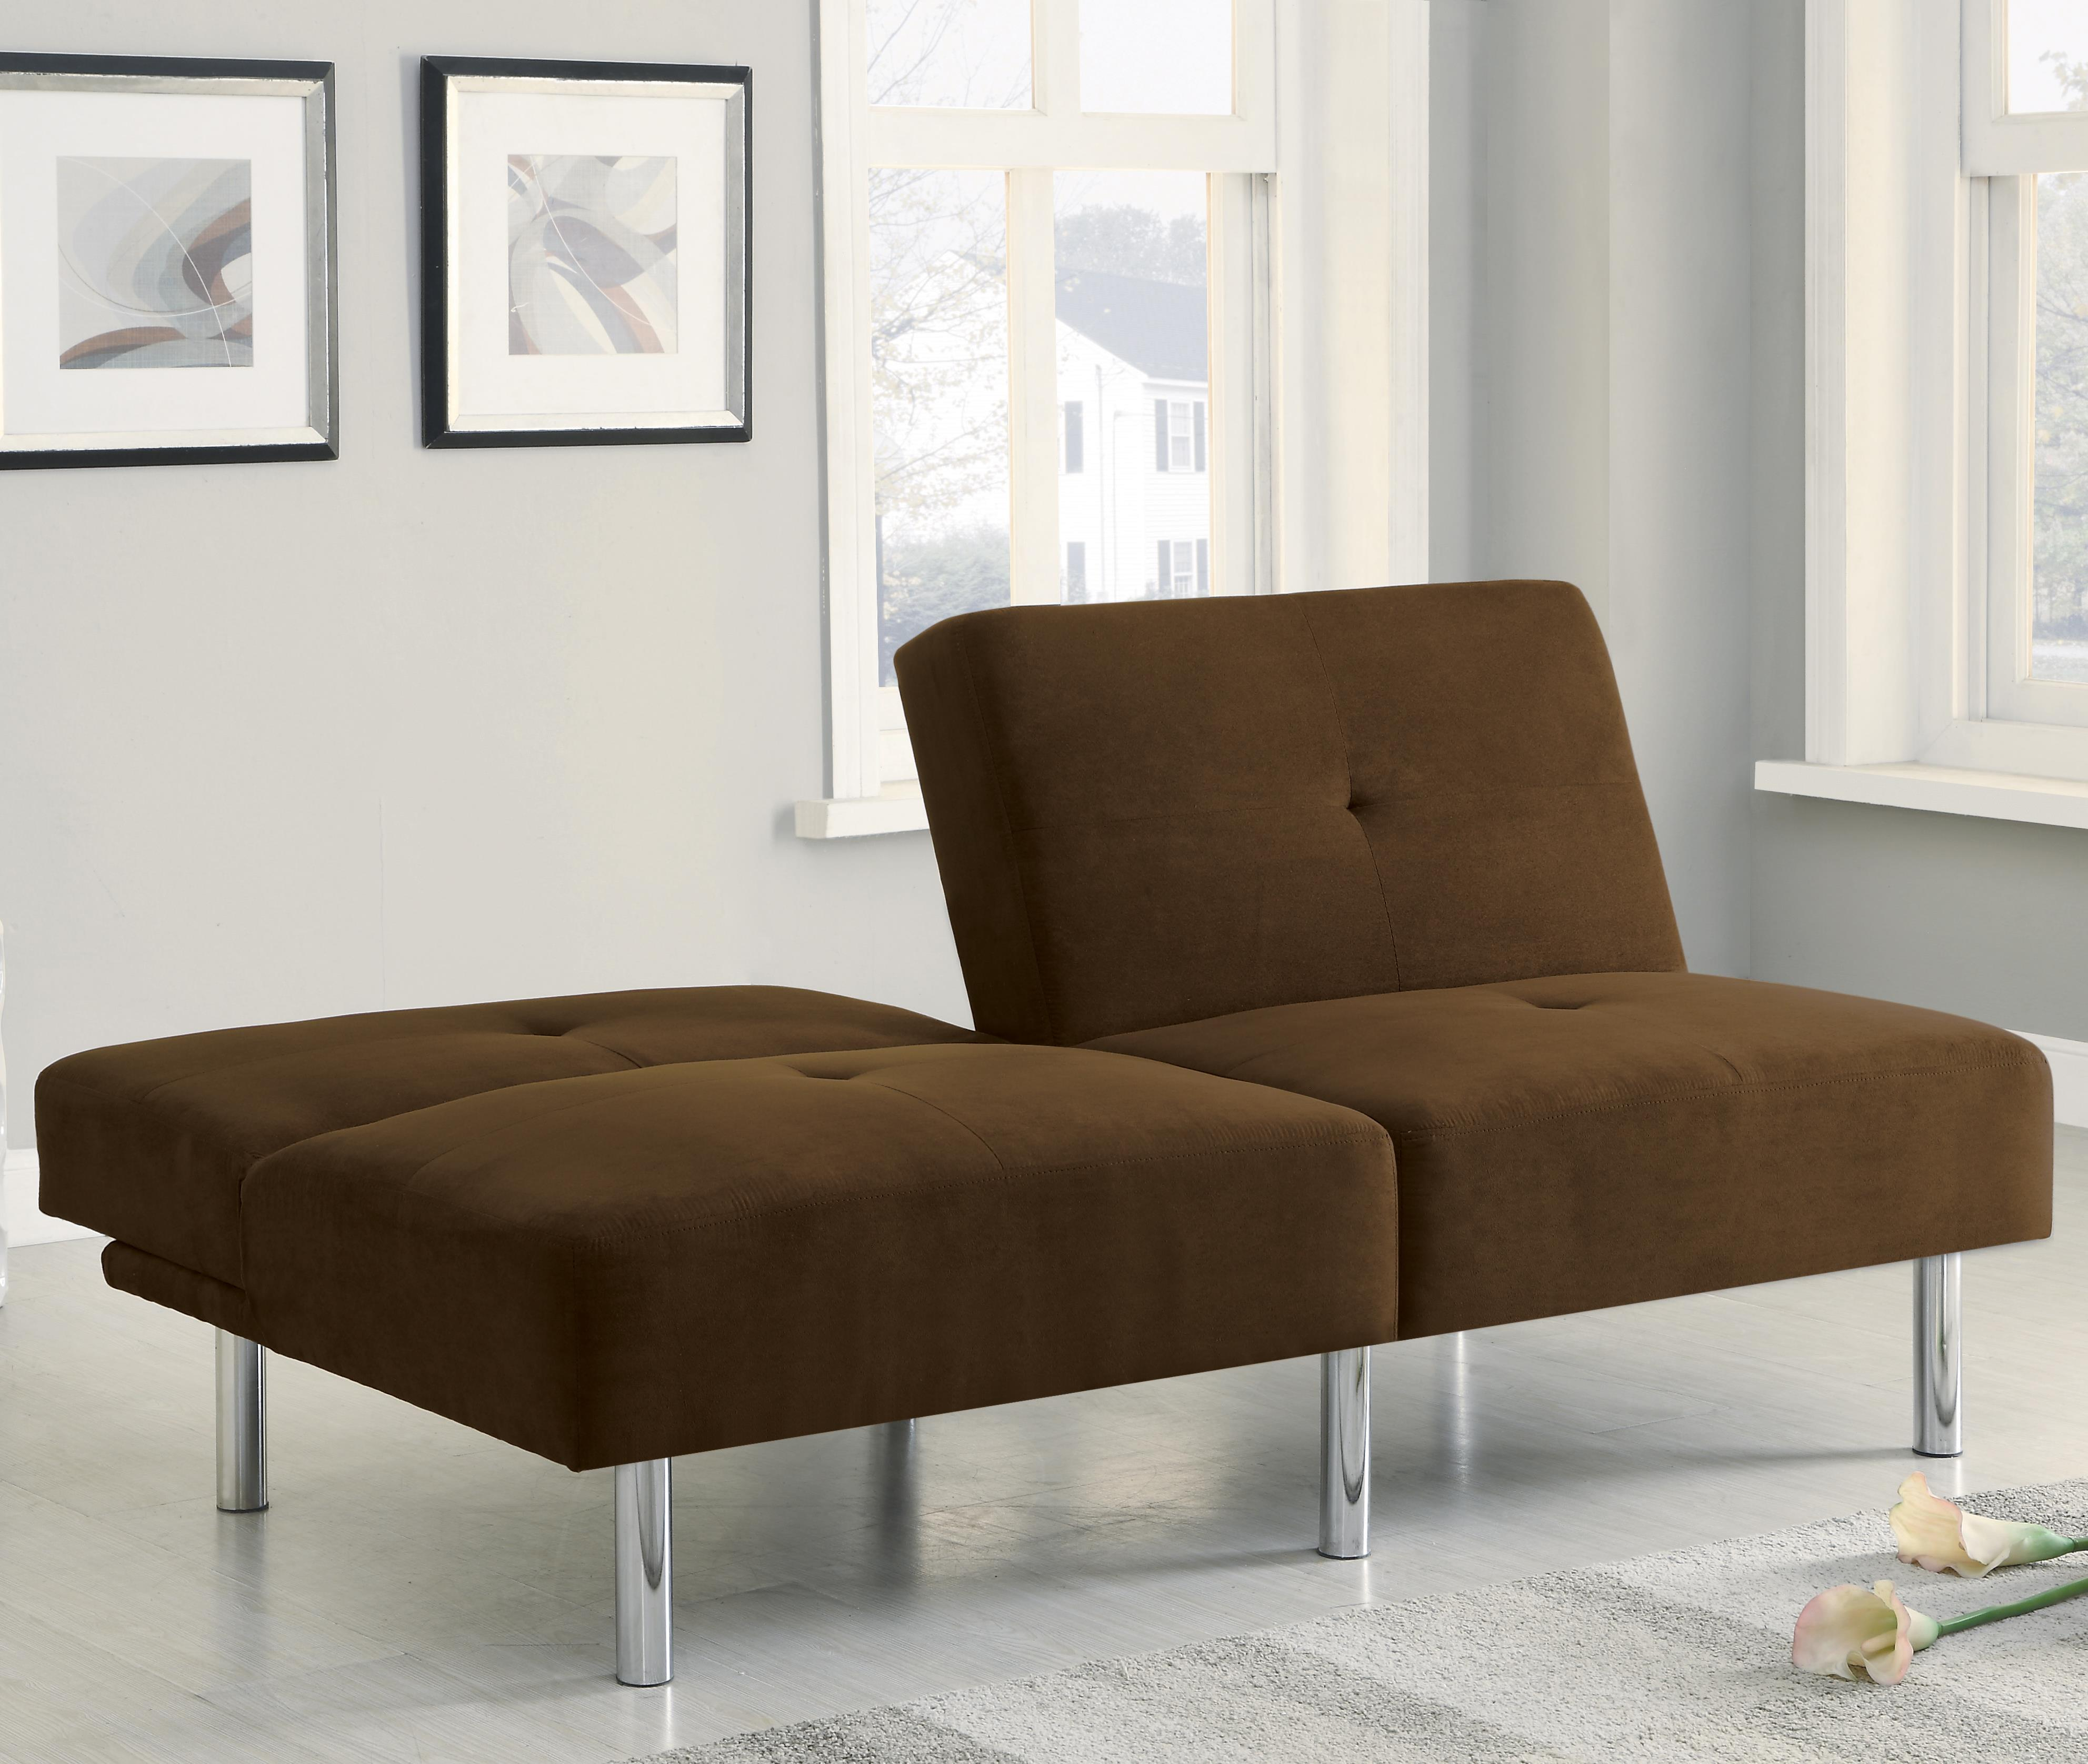 Coaster Sofa Beds and Futons -  Sofa Bed - Item Number: 300207